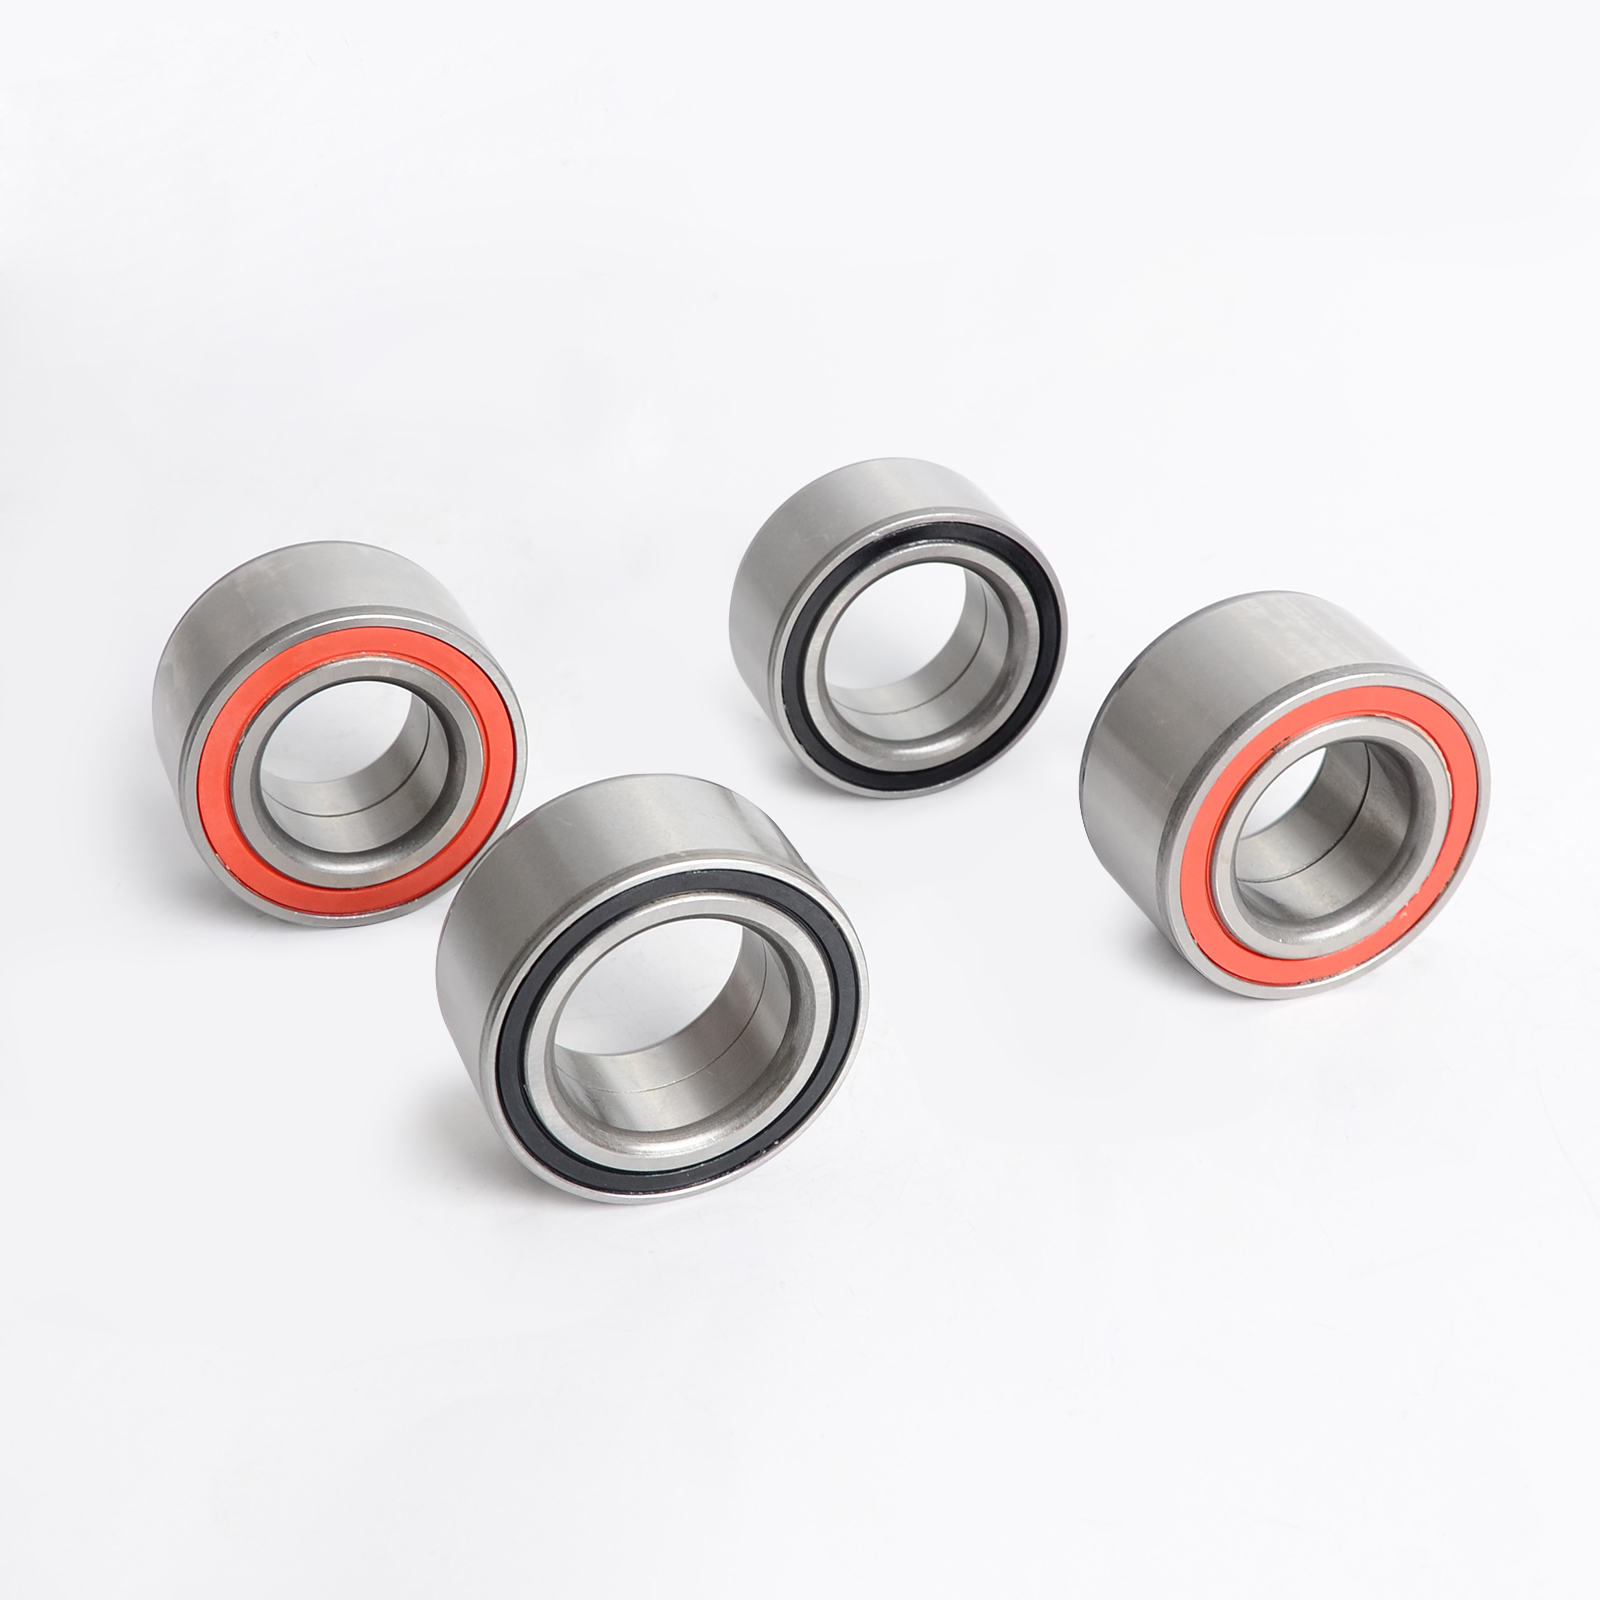 NICECNC Front With Rear Wheel Carrier Bearing For Polaris RZR800 RZR800S 2010 2011 2012 2013 2014 RZR 800 SNICECNC Front With Rear Wheel Carrier Bearing For Polaris RZR800 RZR800S 2010 2011 2012 2013 2014 RZR 800 S